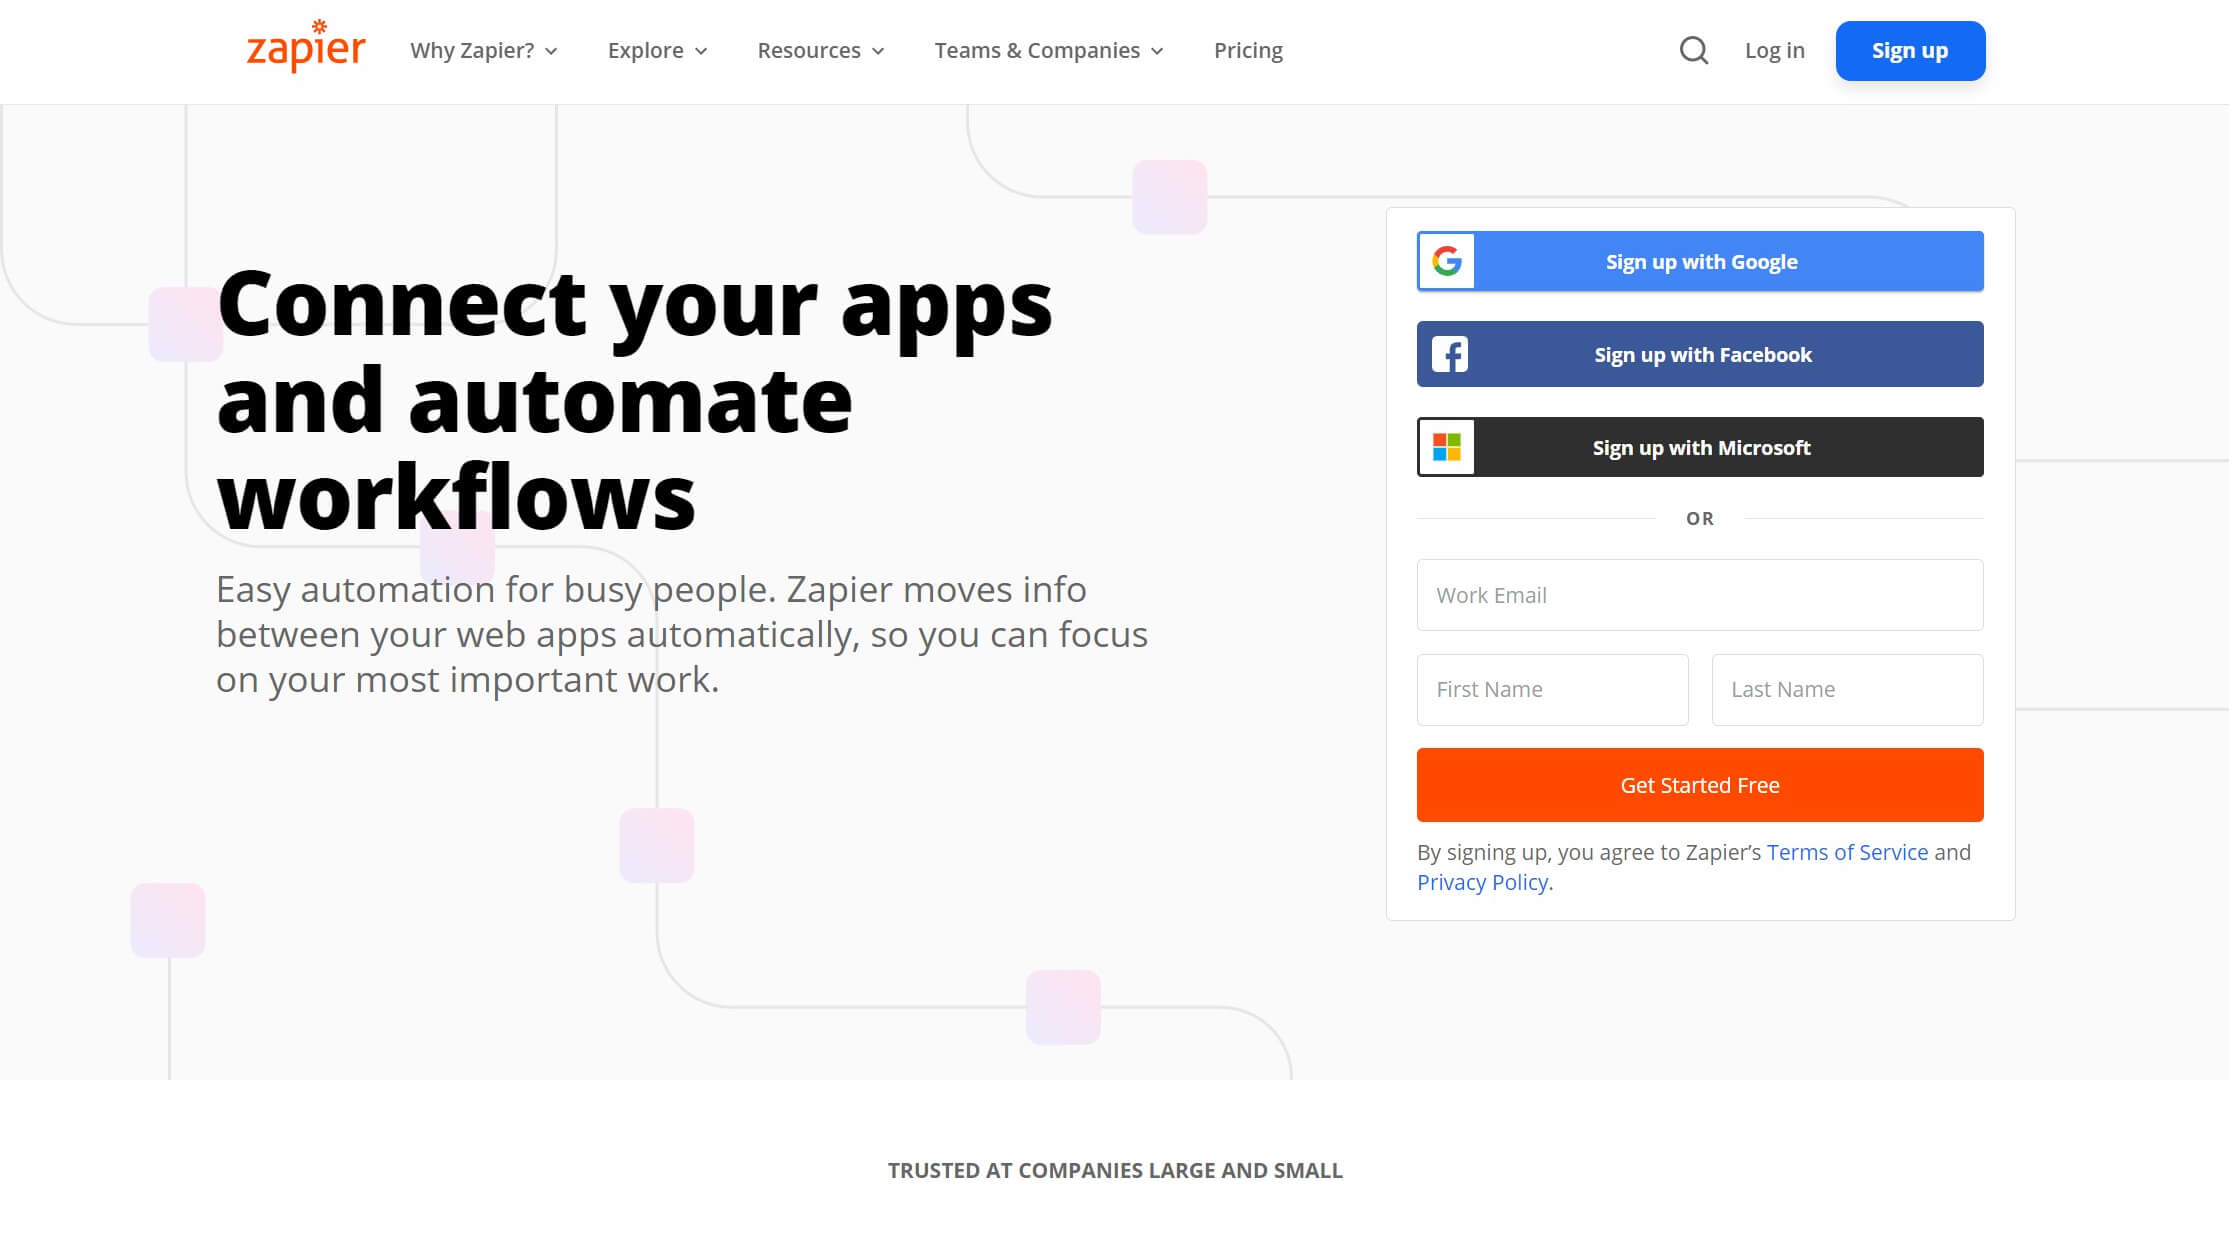 The Zapier service for connecting online apps.